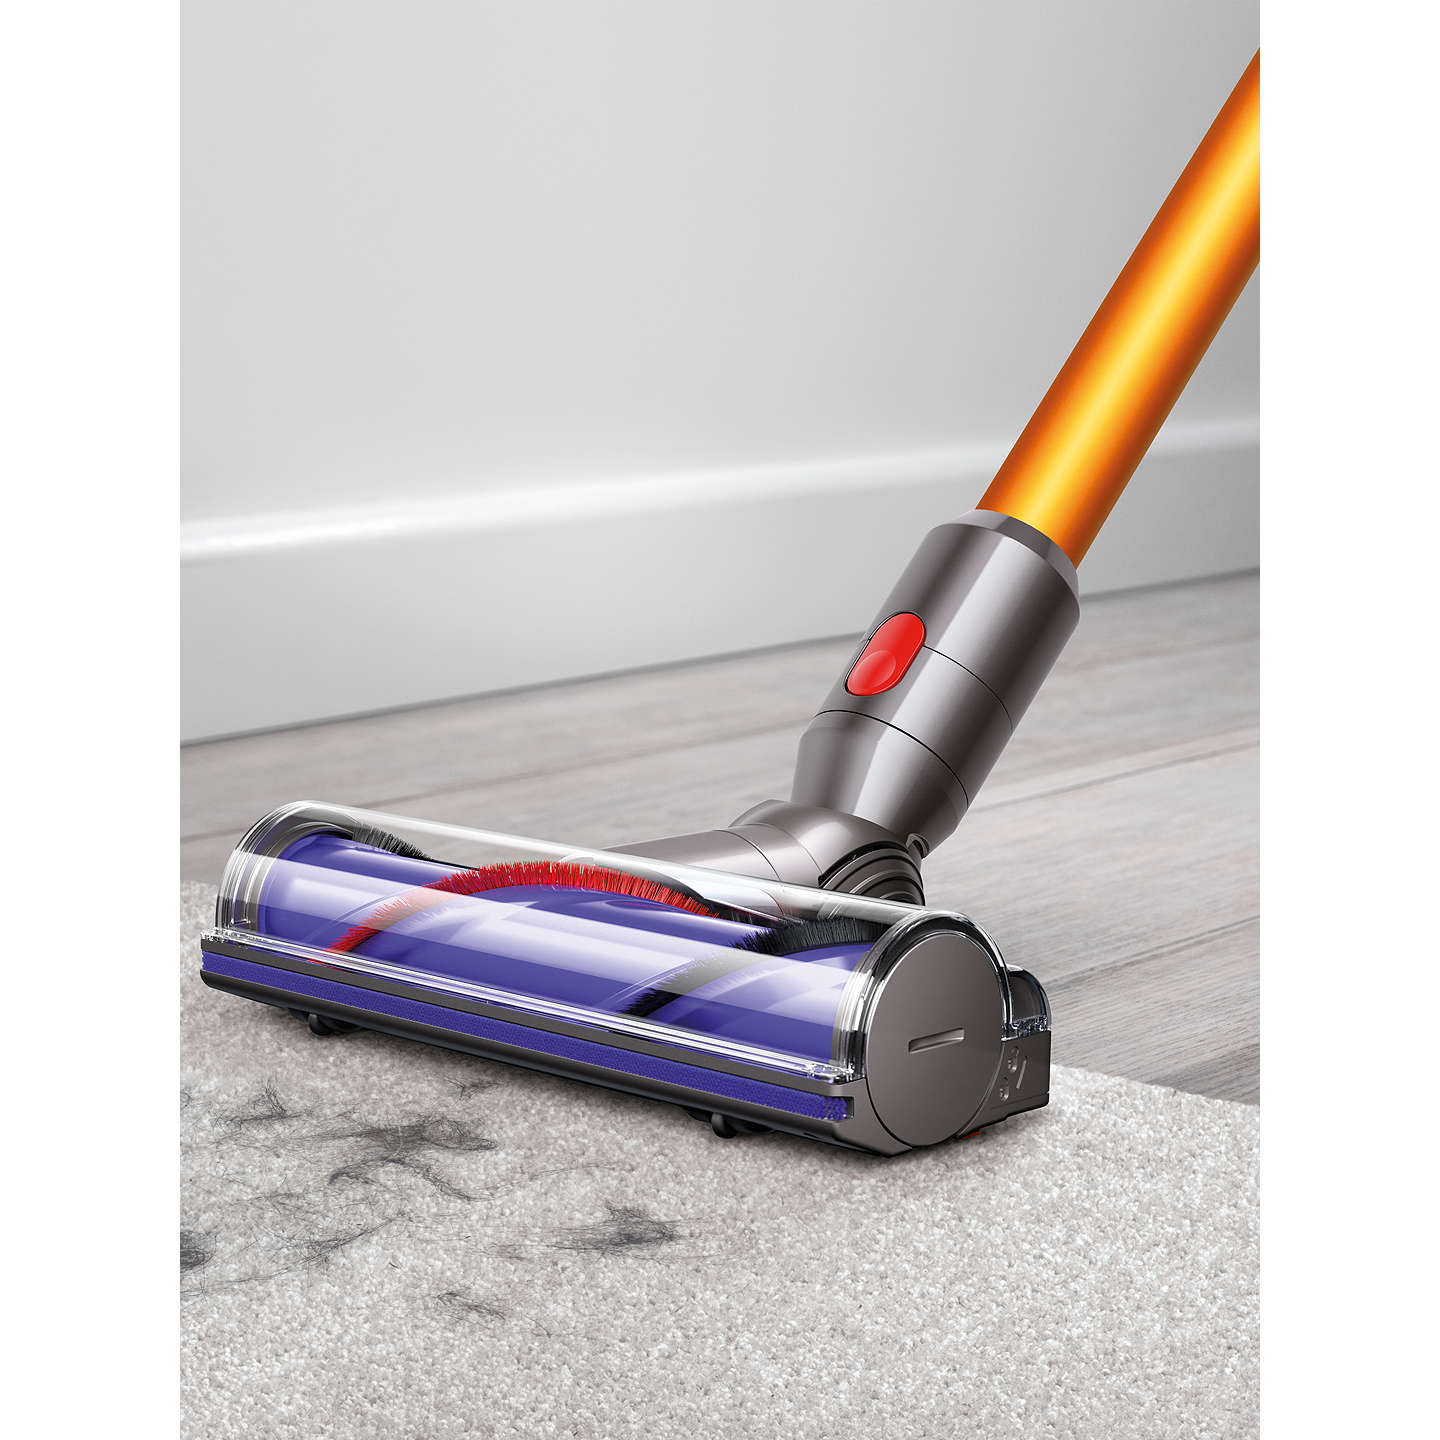 BuyDyson V8 Absolute Cordless Vacuum Cleaner Online At Johnlewis